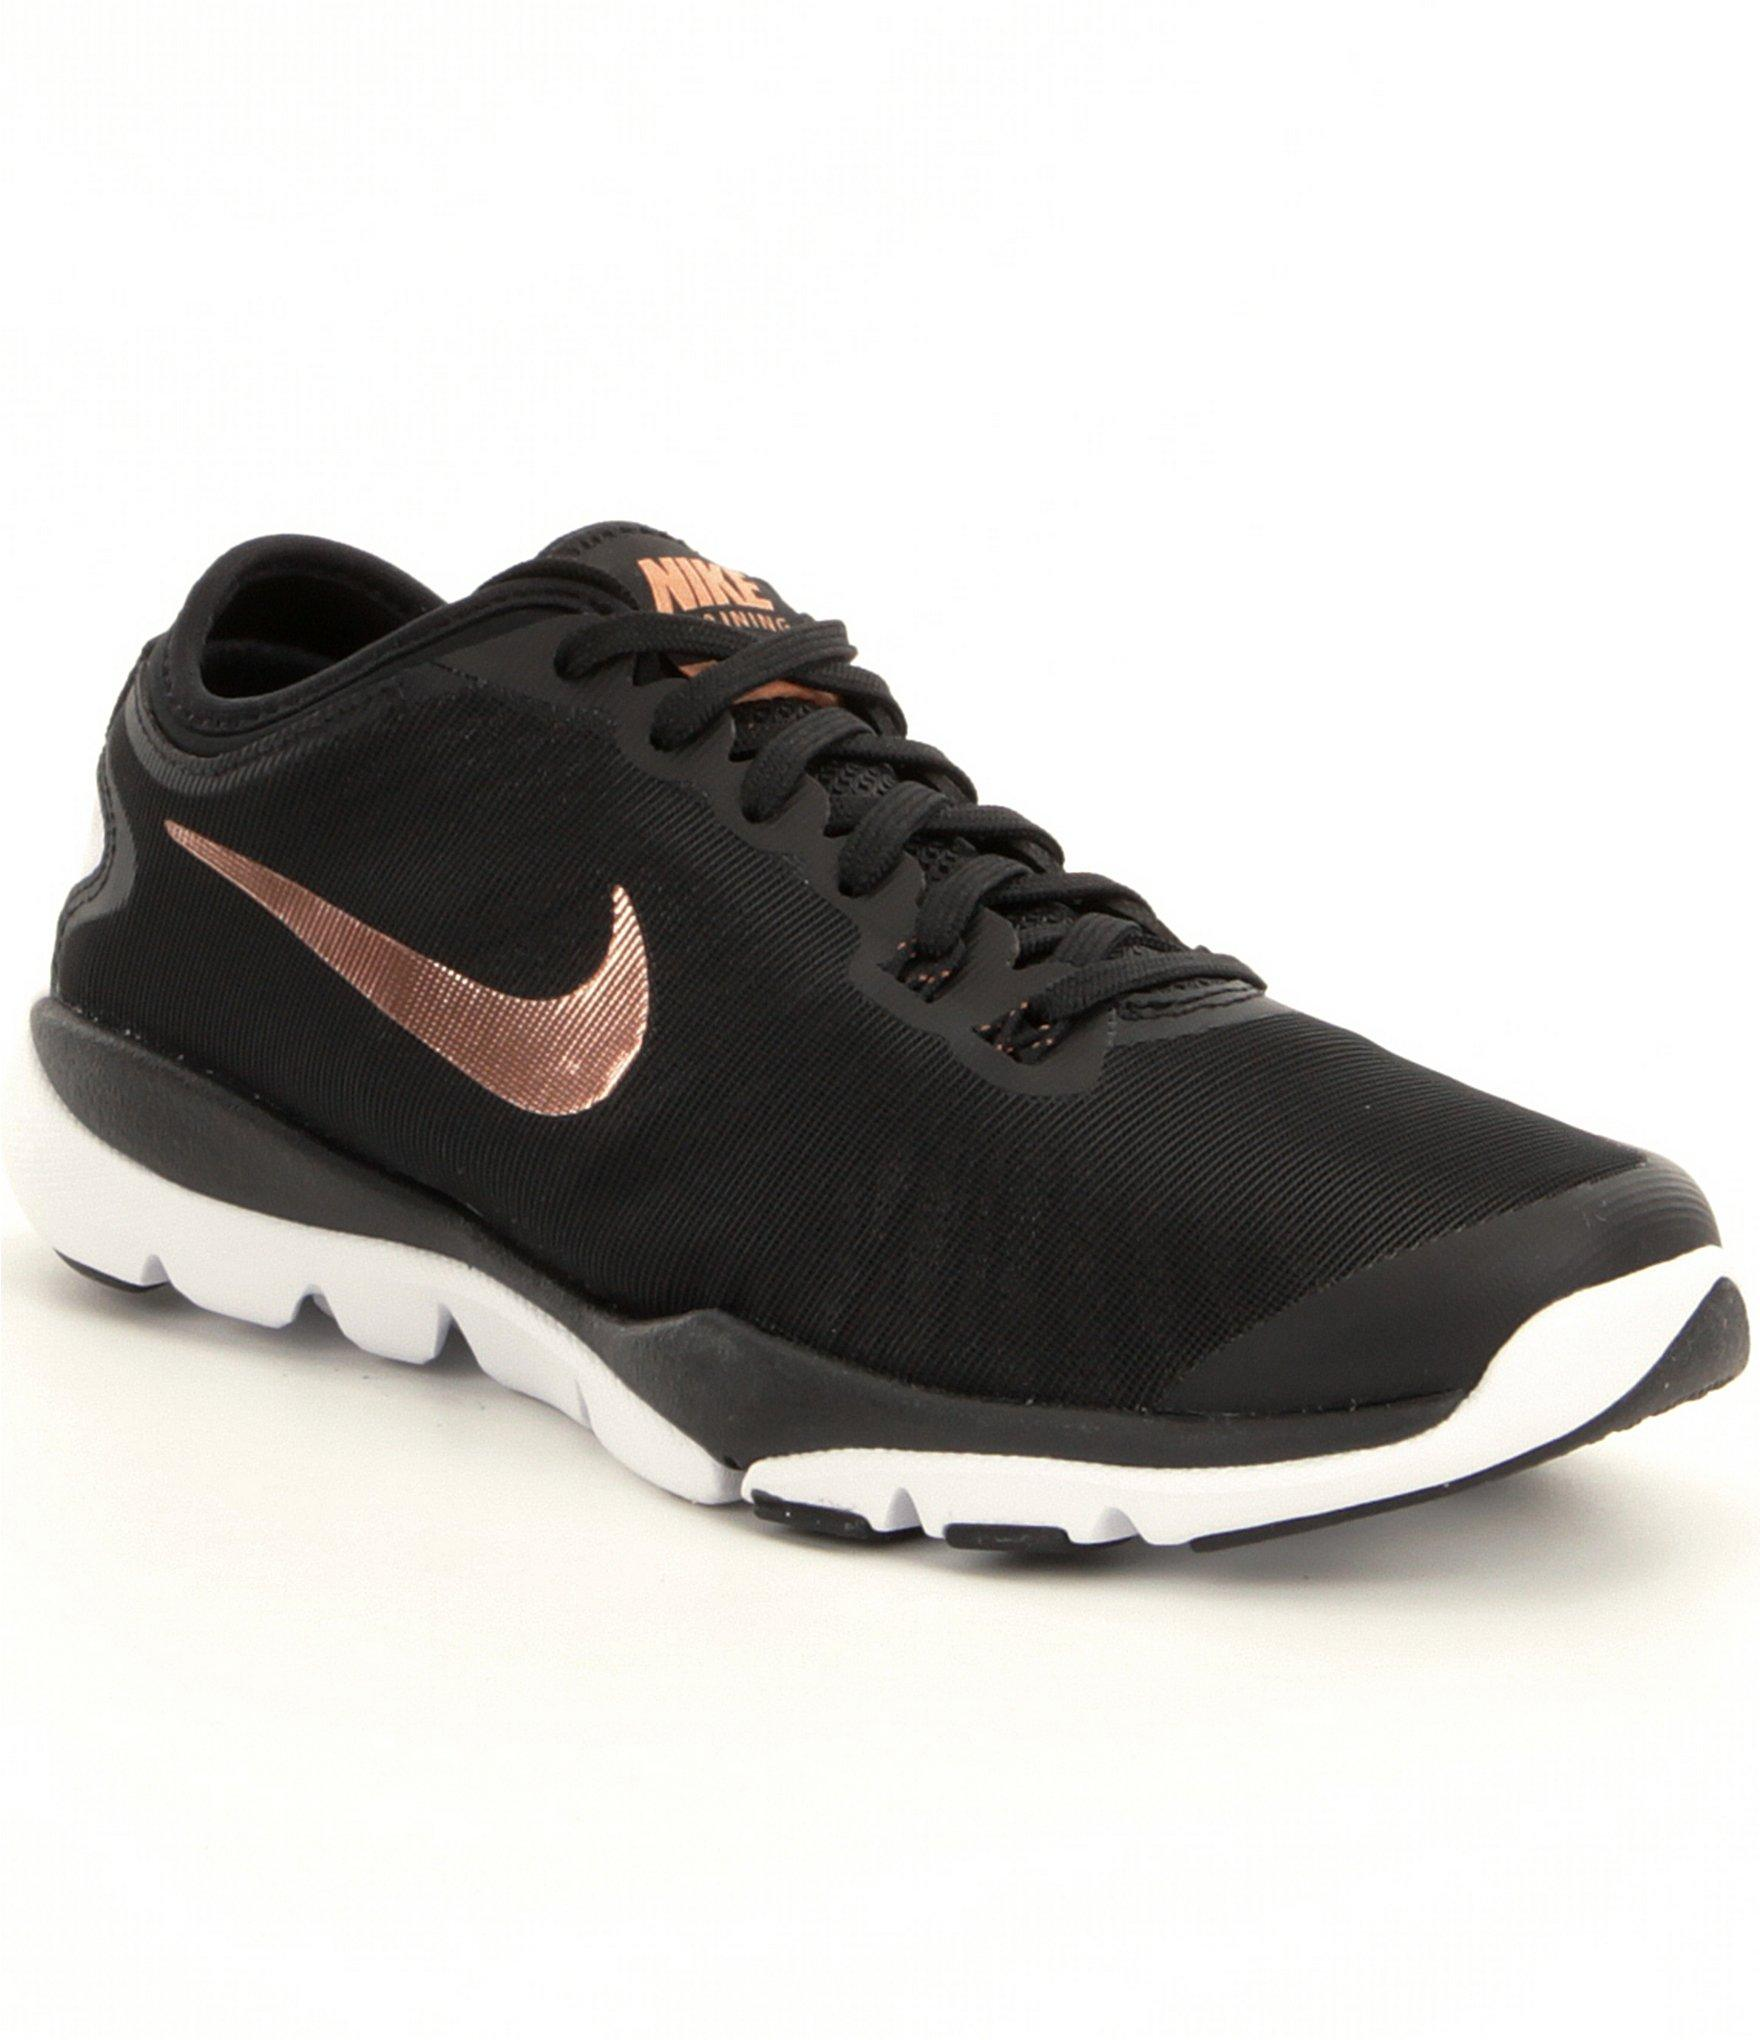 new product 42117 6f6a1 Lyst - Nike Women´s Flex Supreme Tr 4 Training Shoes in Black